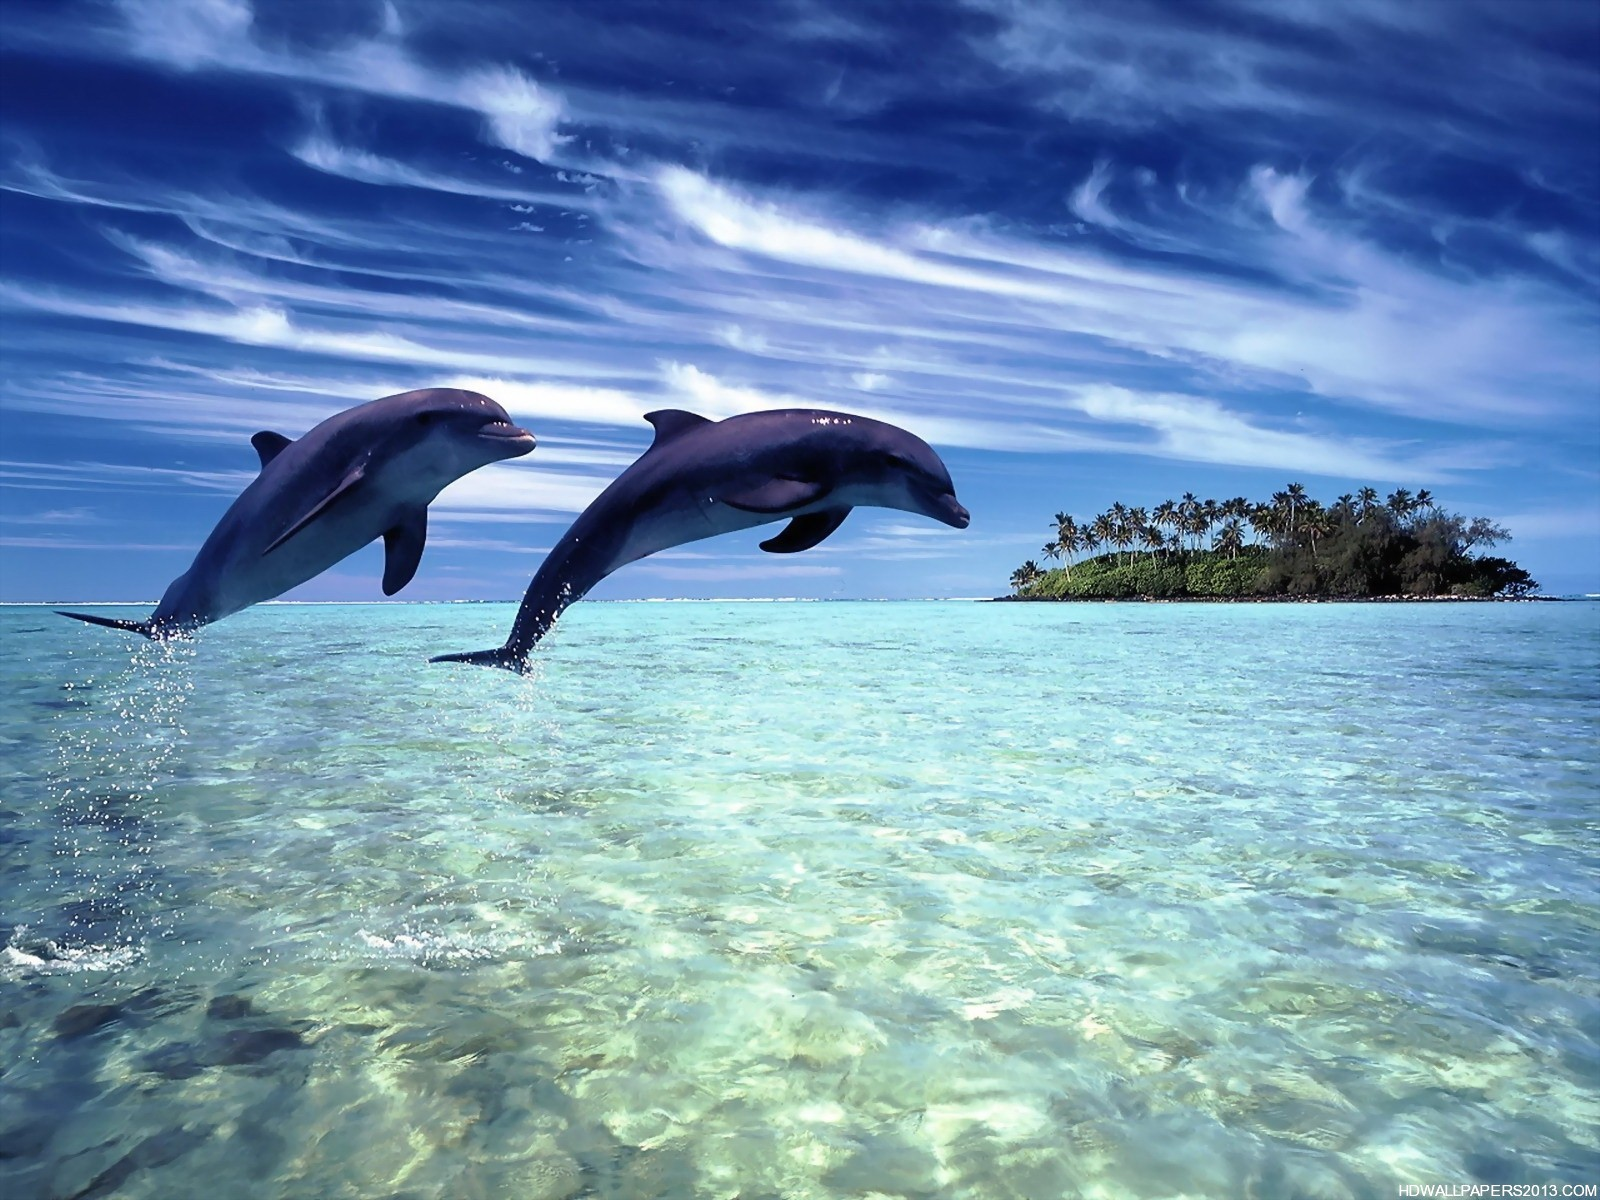 Dolphin wallpapers hd backgrounds high definition wallpapers high dolphin wallpapers hd backgrounds voltagebd Image collections